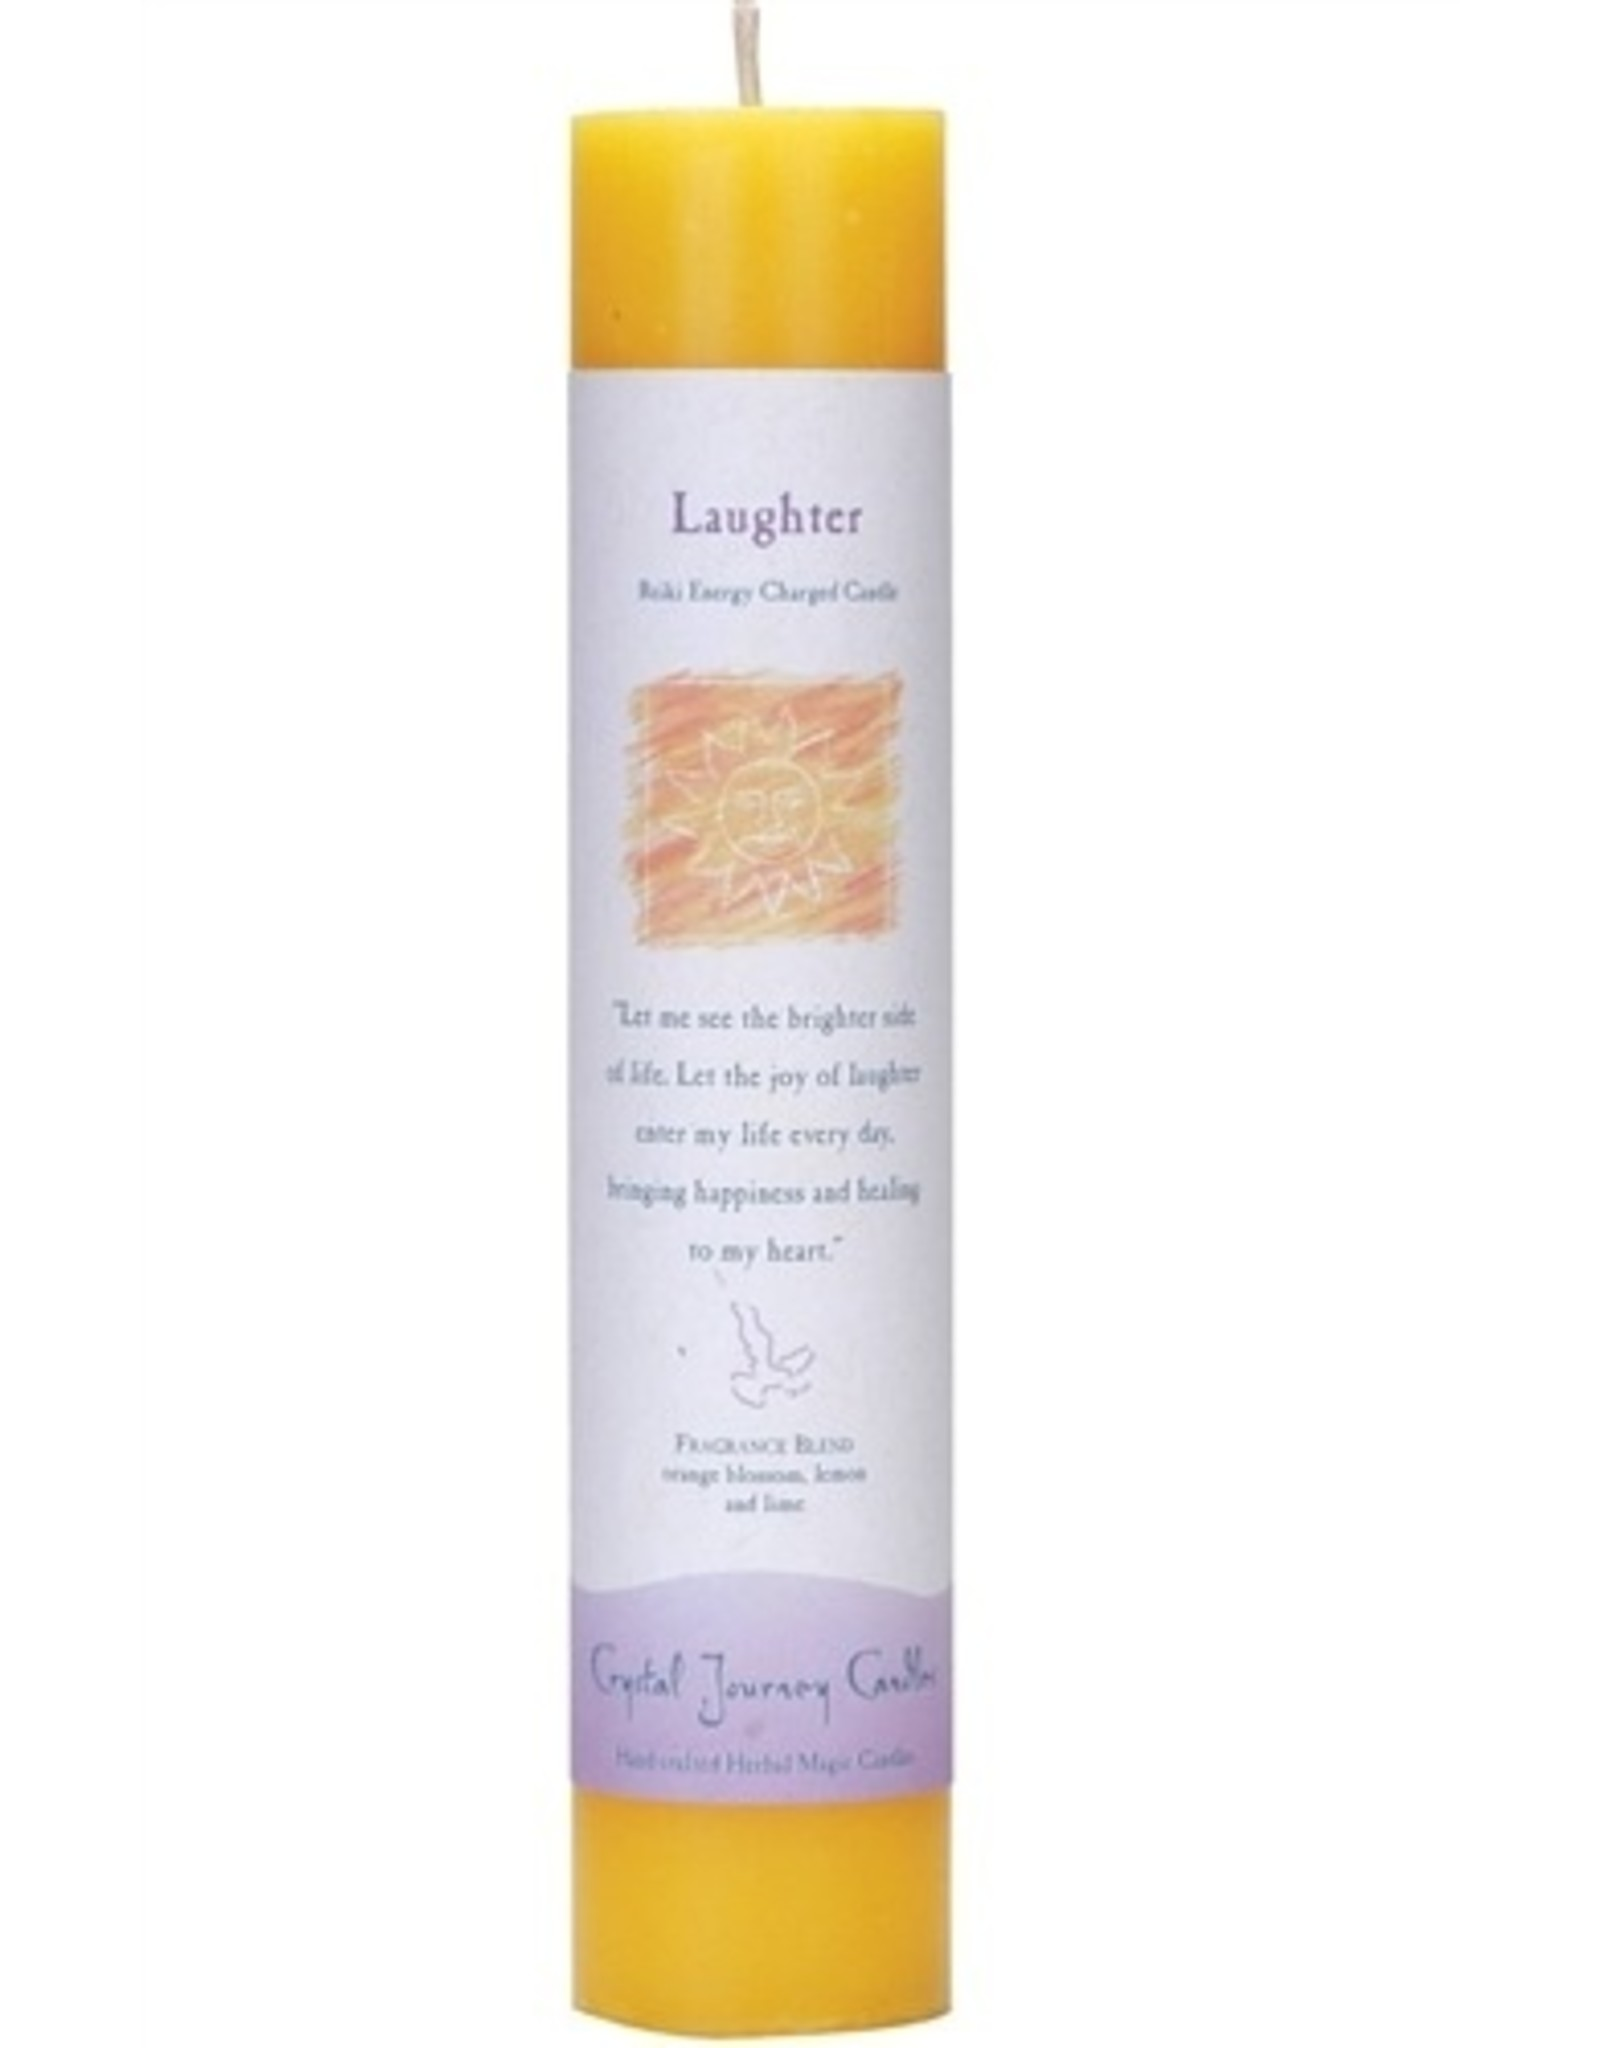 Crystal Journey Laughter Magic Pillar Candle